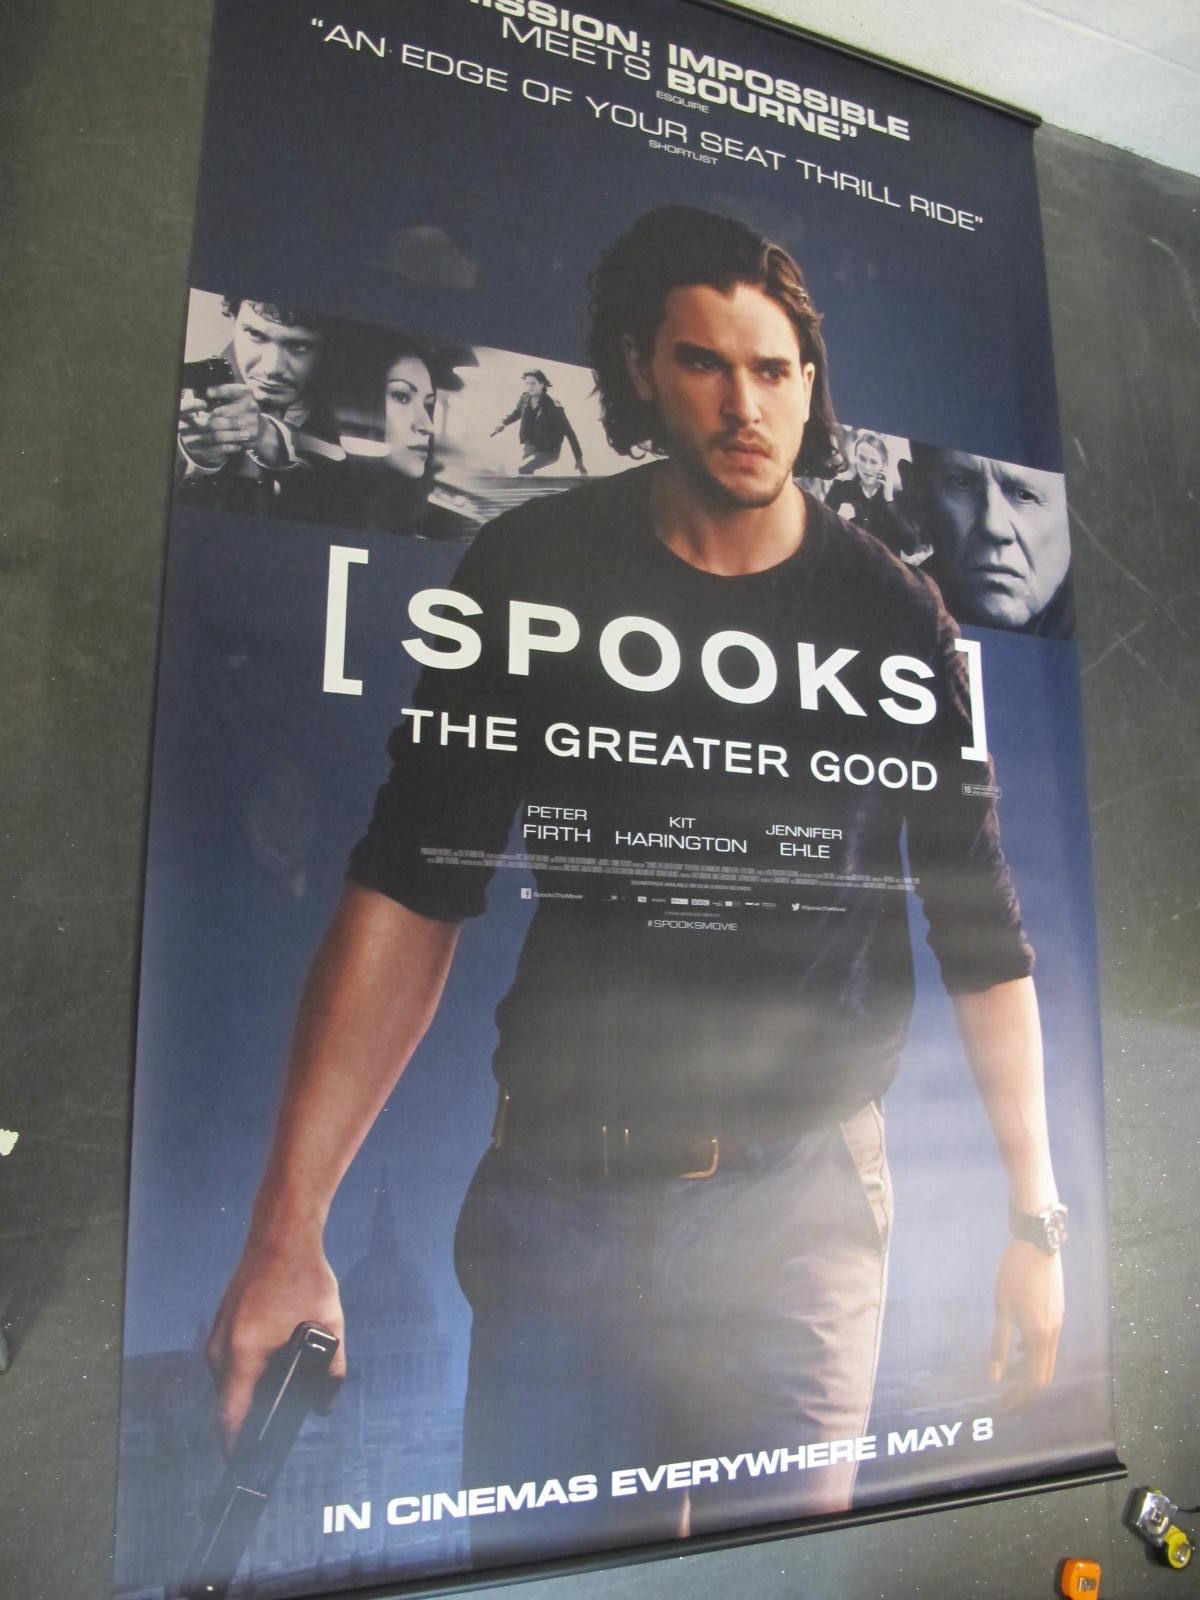 Spooks: the Greater Good, 2015 Official Cinema Banner, 244cm x 152cm.